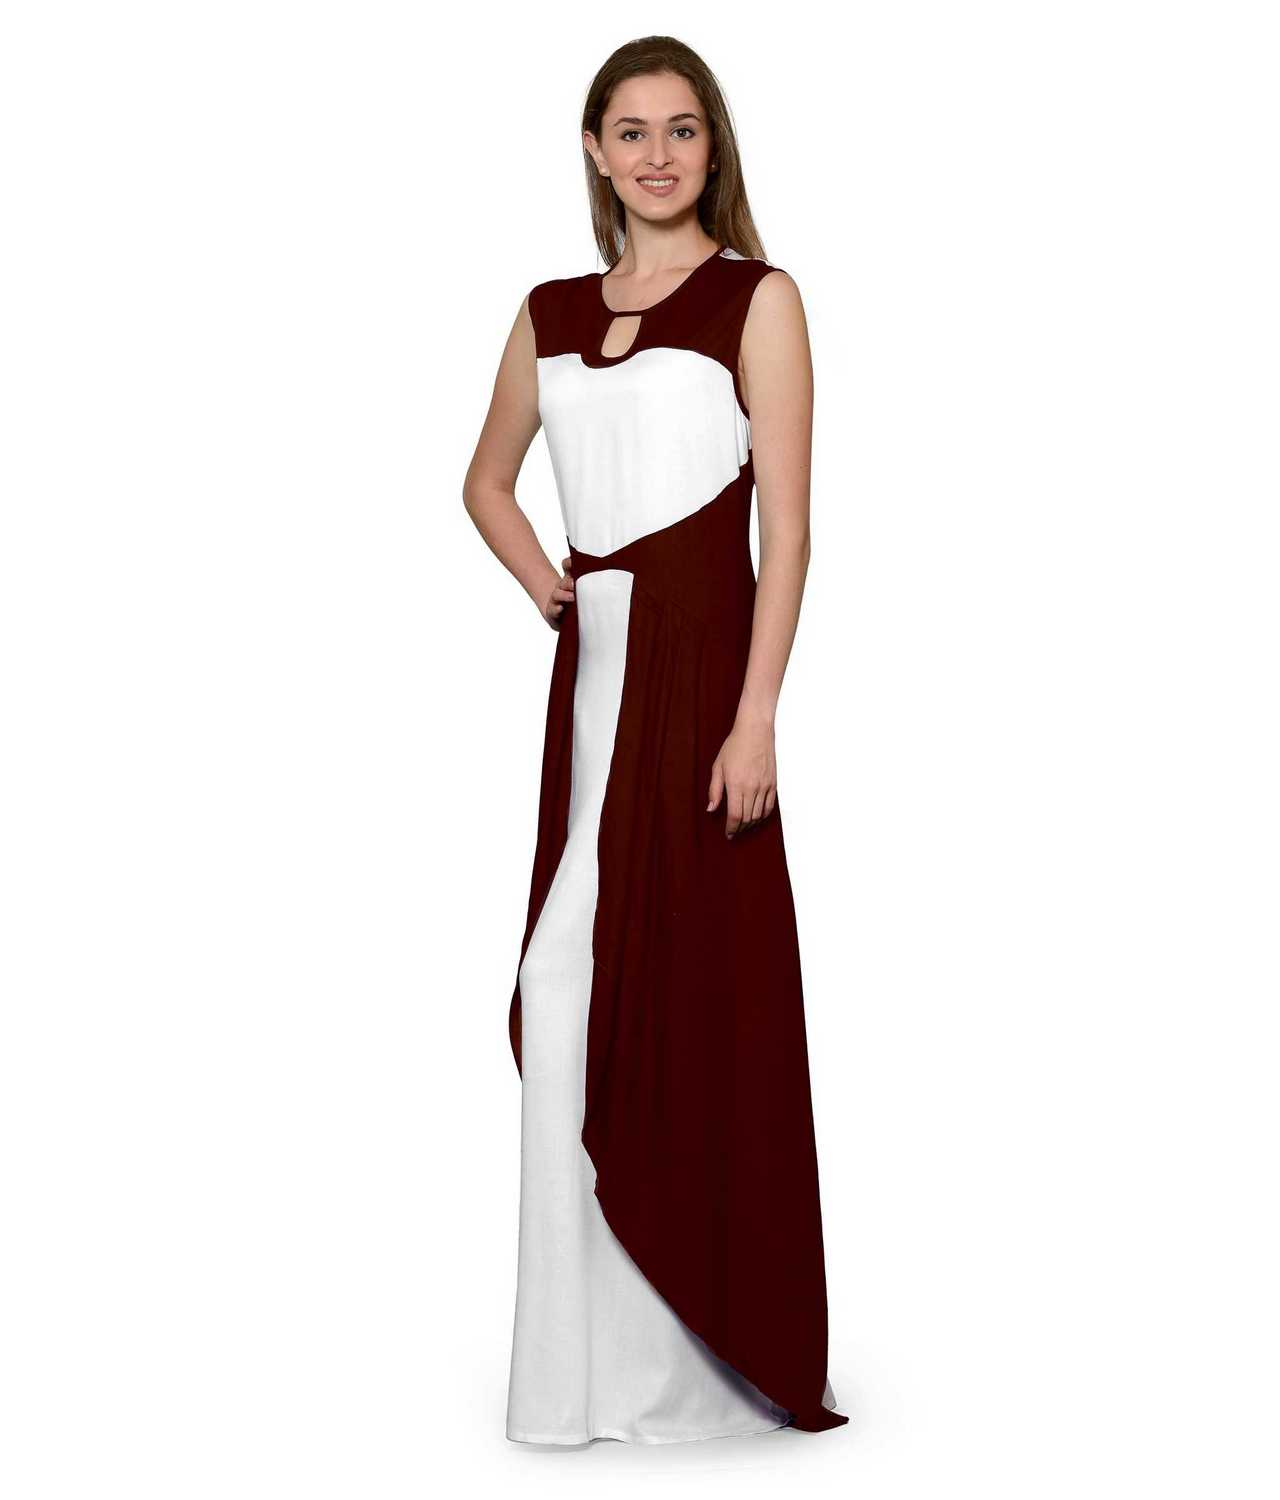 Color Block Maxi Dress or Gown  in Maroon:White